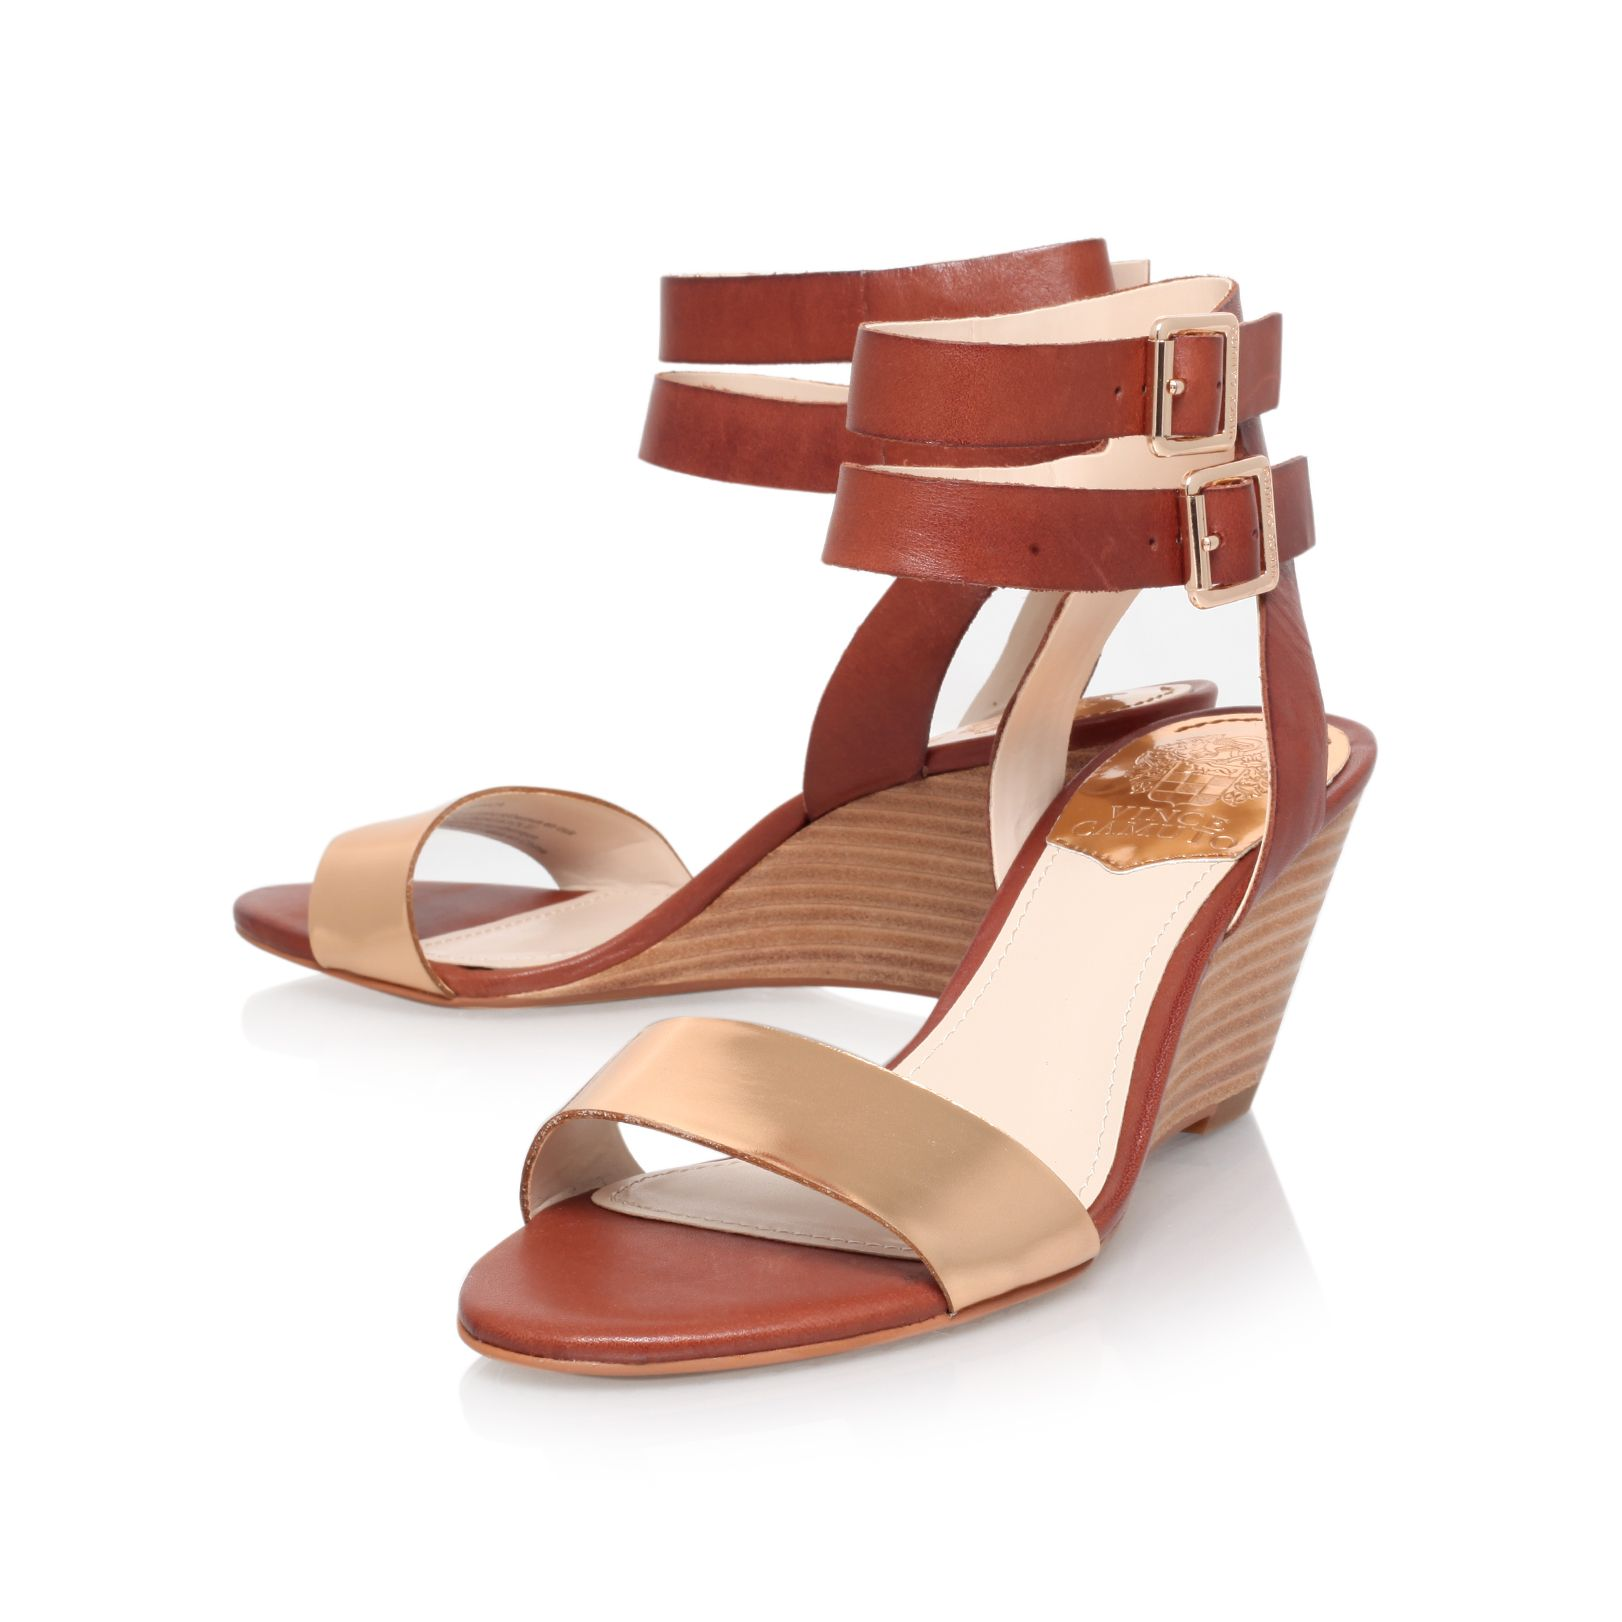 Winca mid heeled wedge sandals